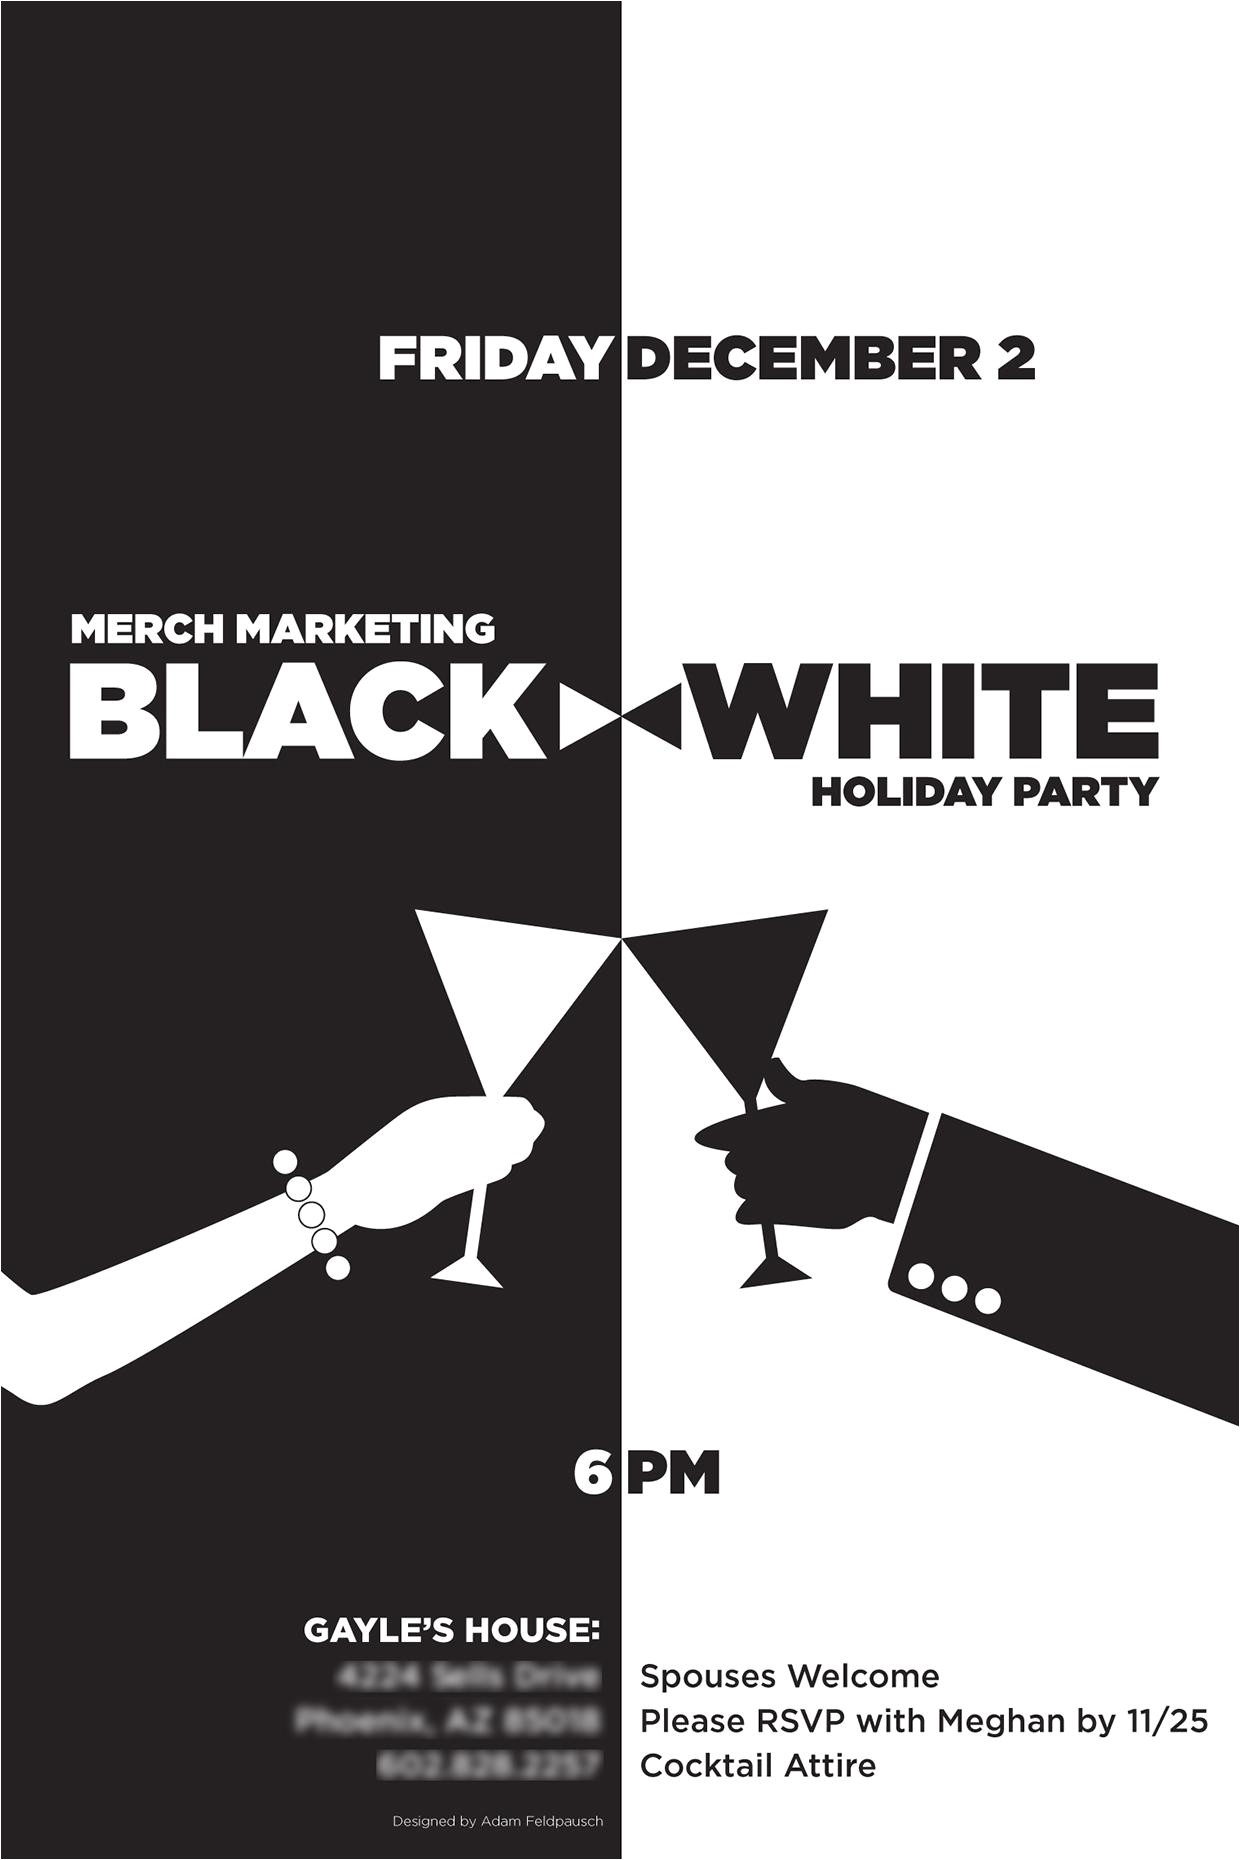 Black and White Christmas Party Invitations Black and White Party Invitations Party Invitations